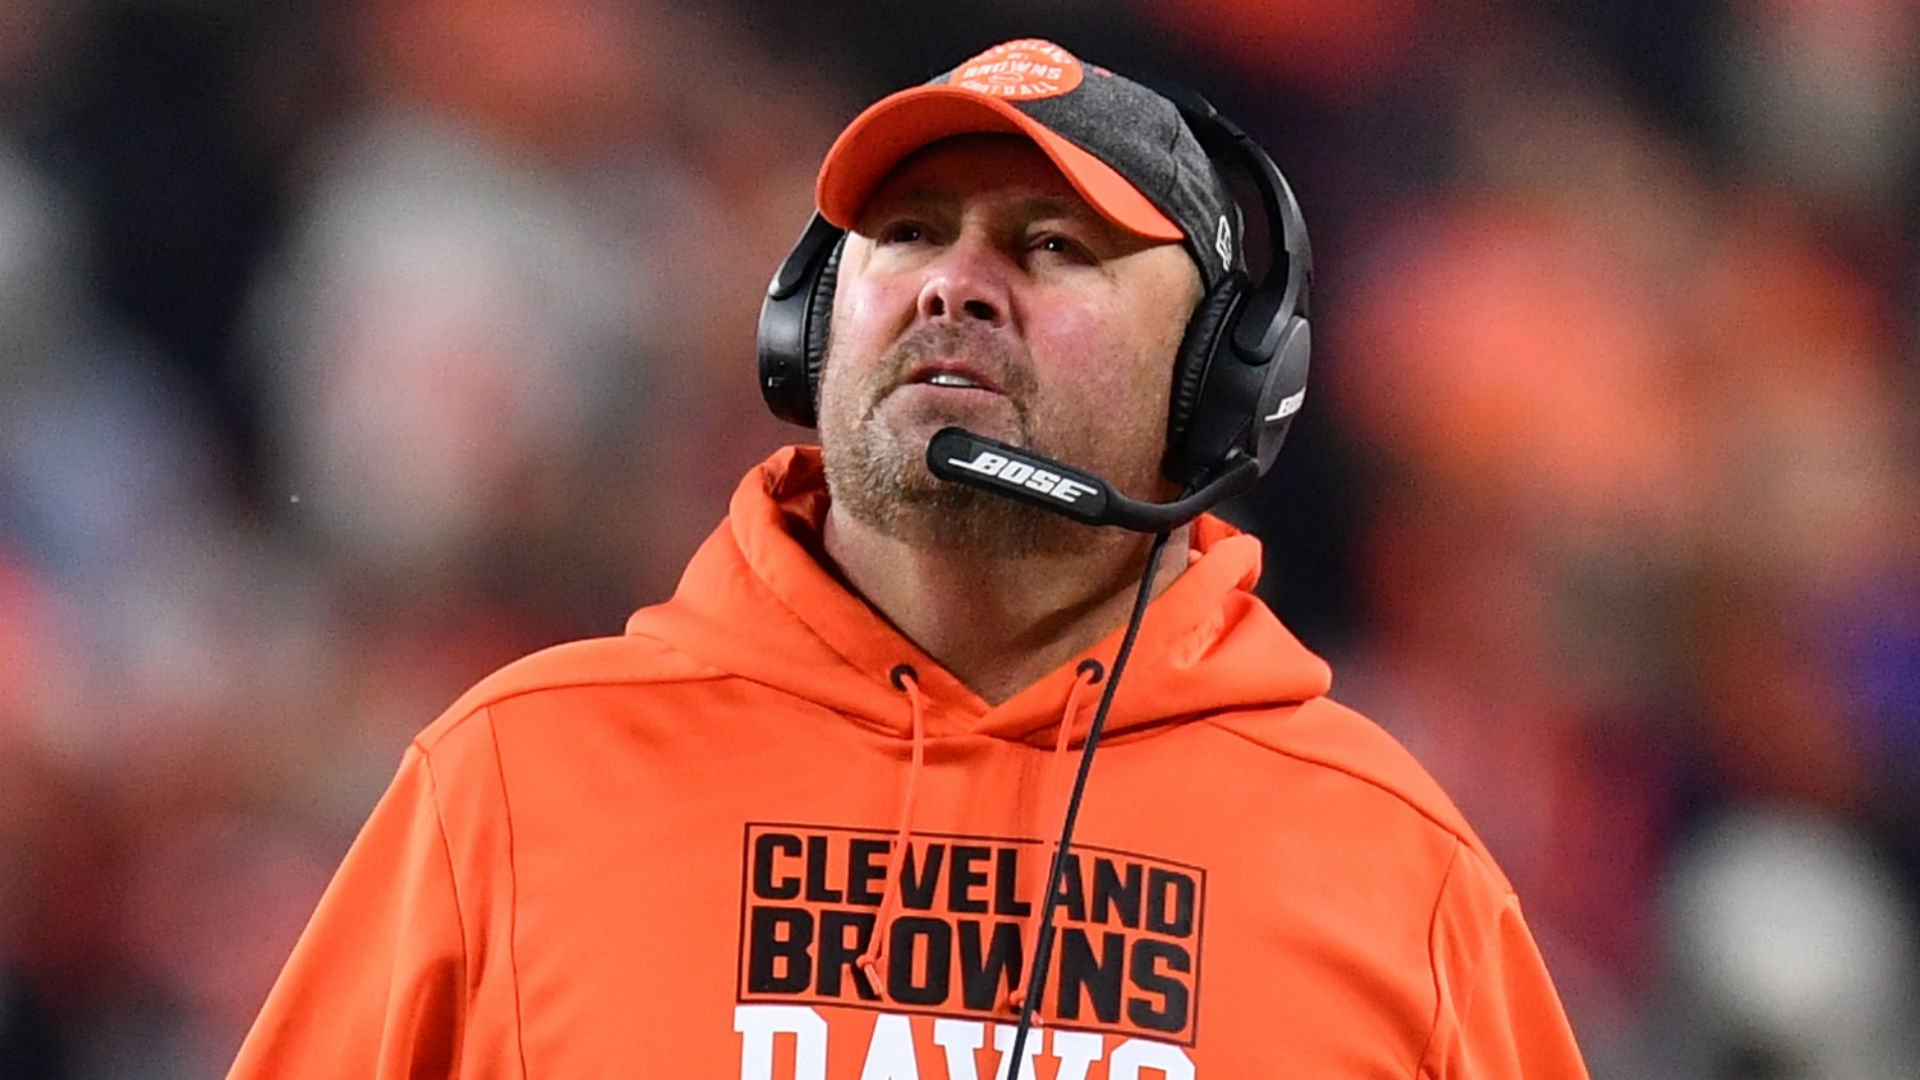 Players in Cleveland Browns are not Happy with Coach Freddie Kitchens